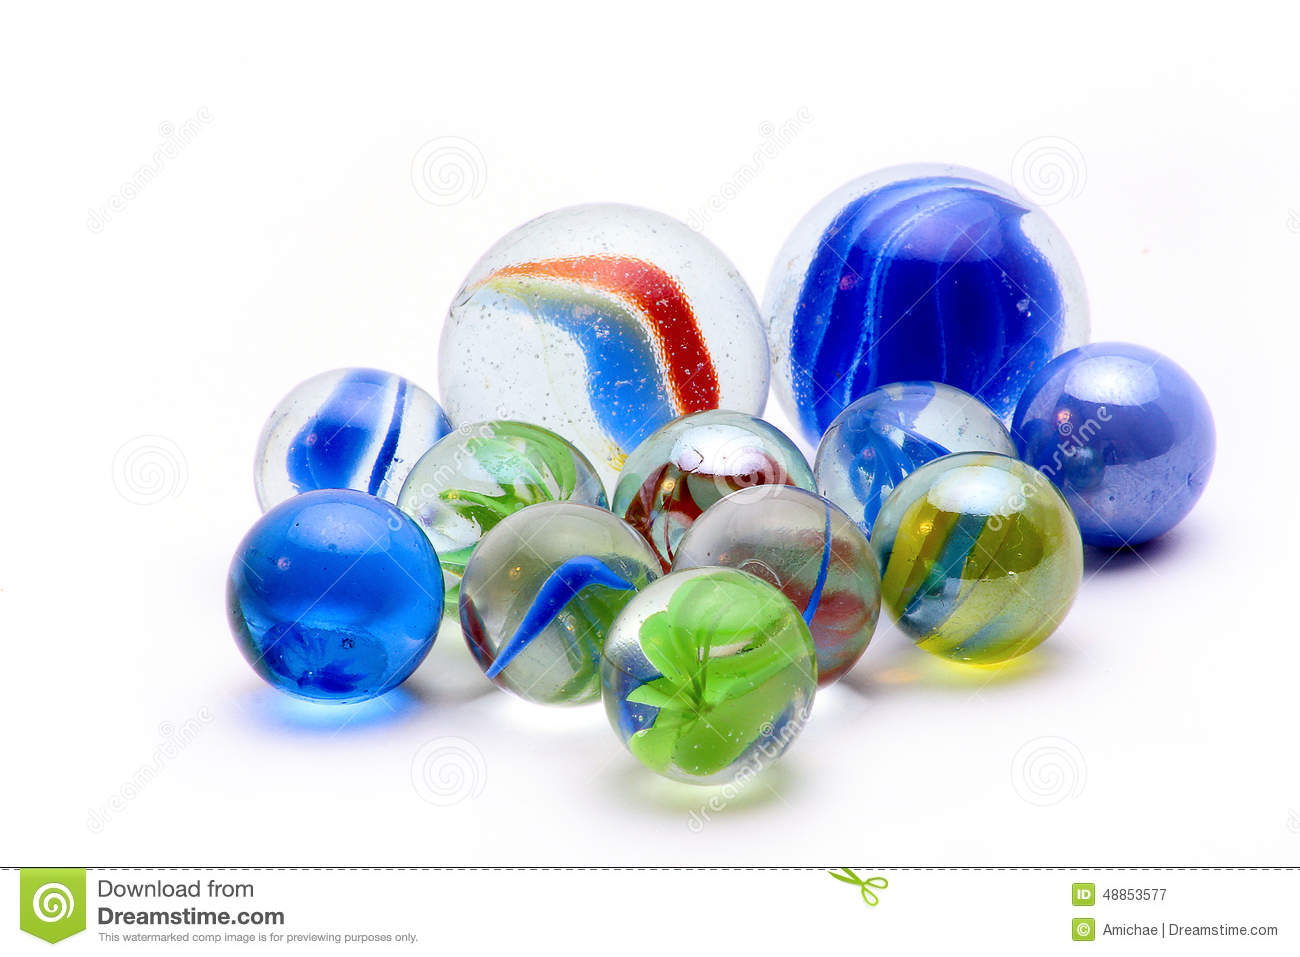 Marbles with blue